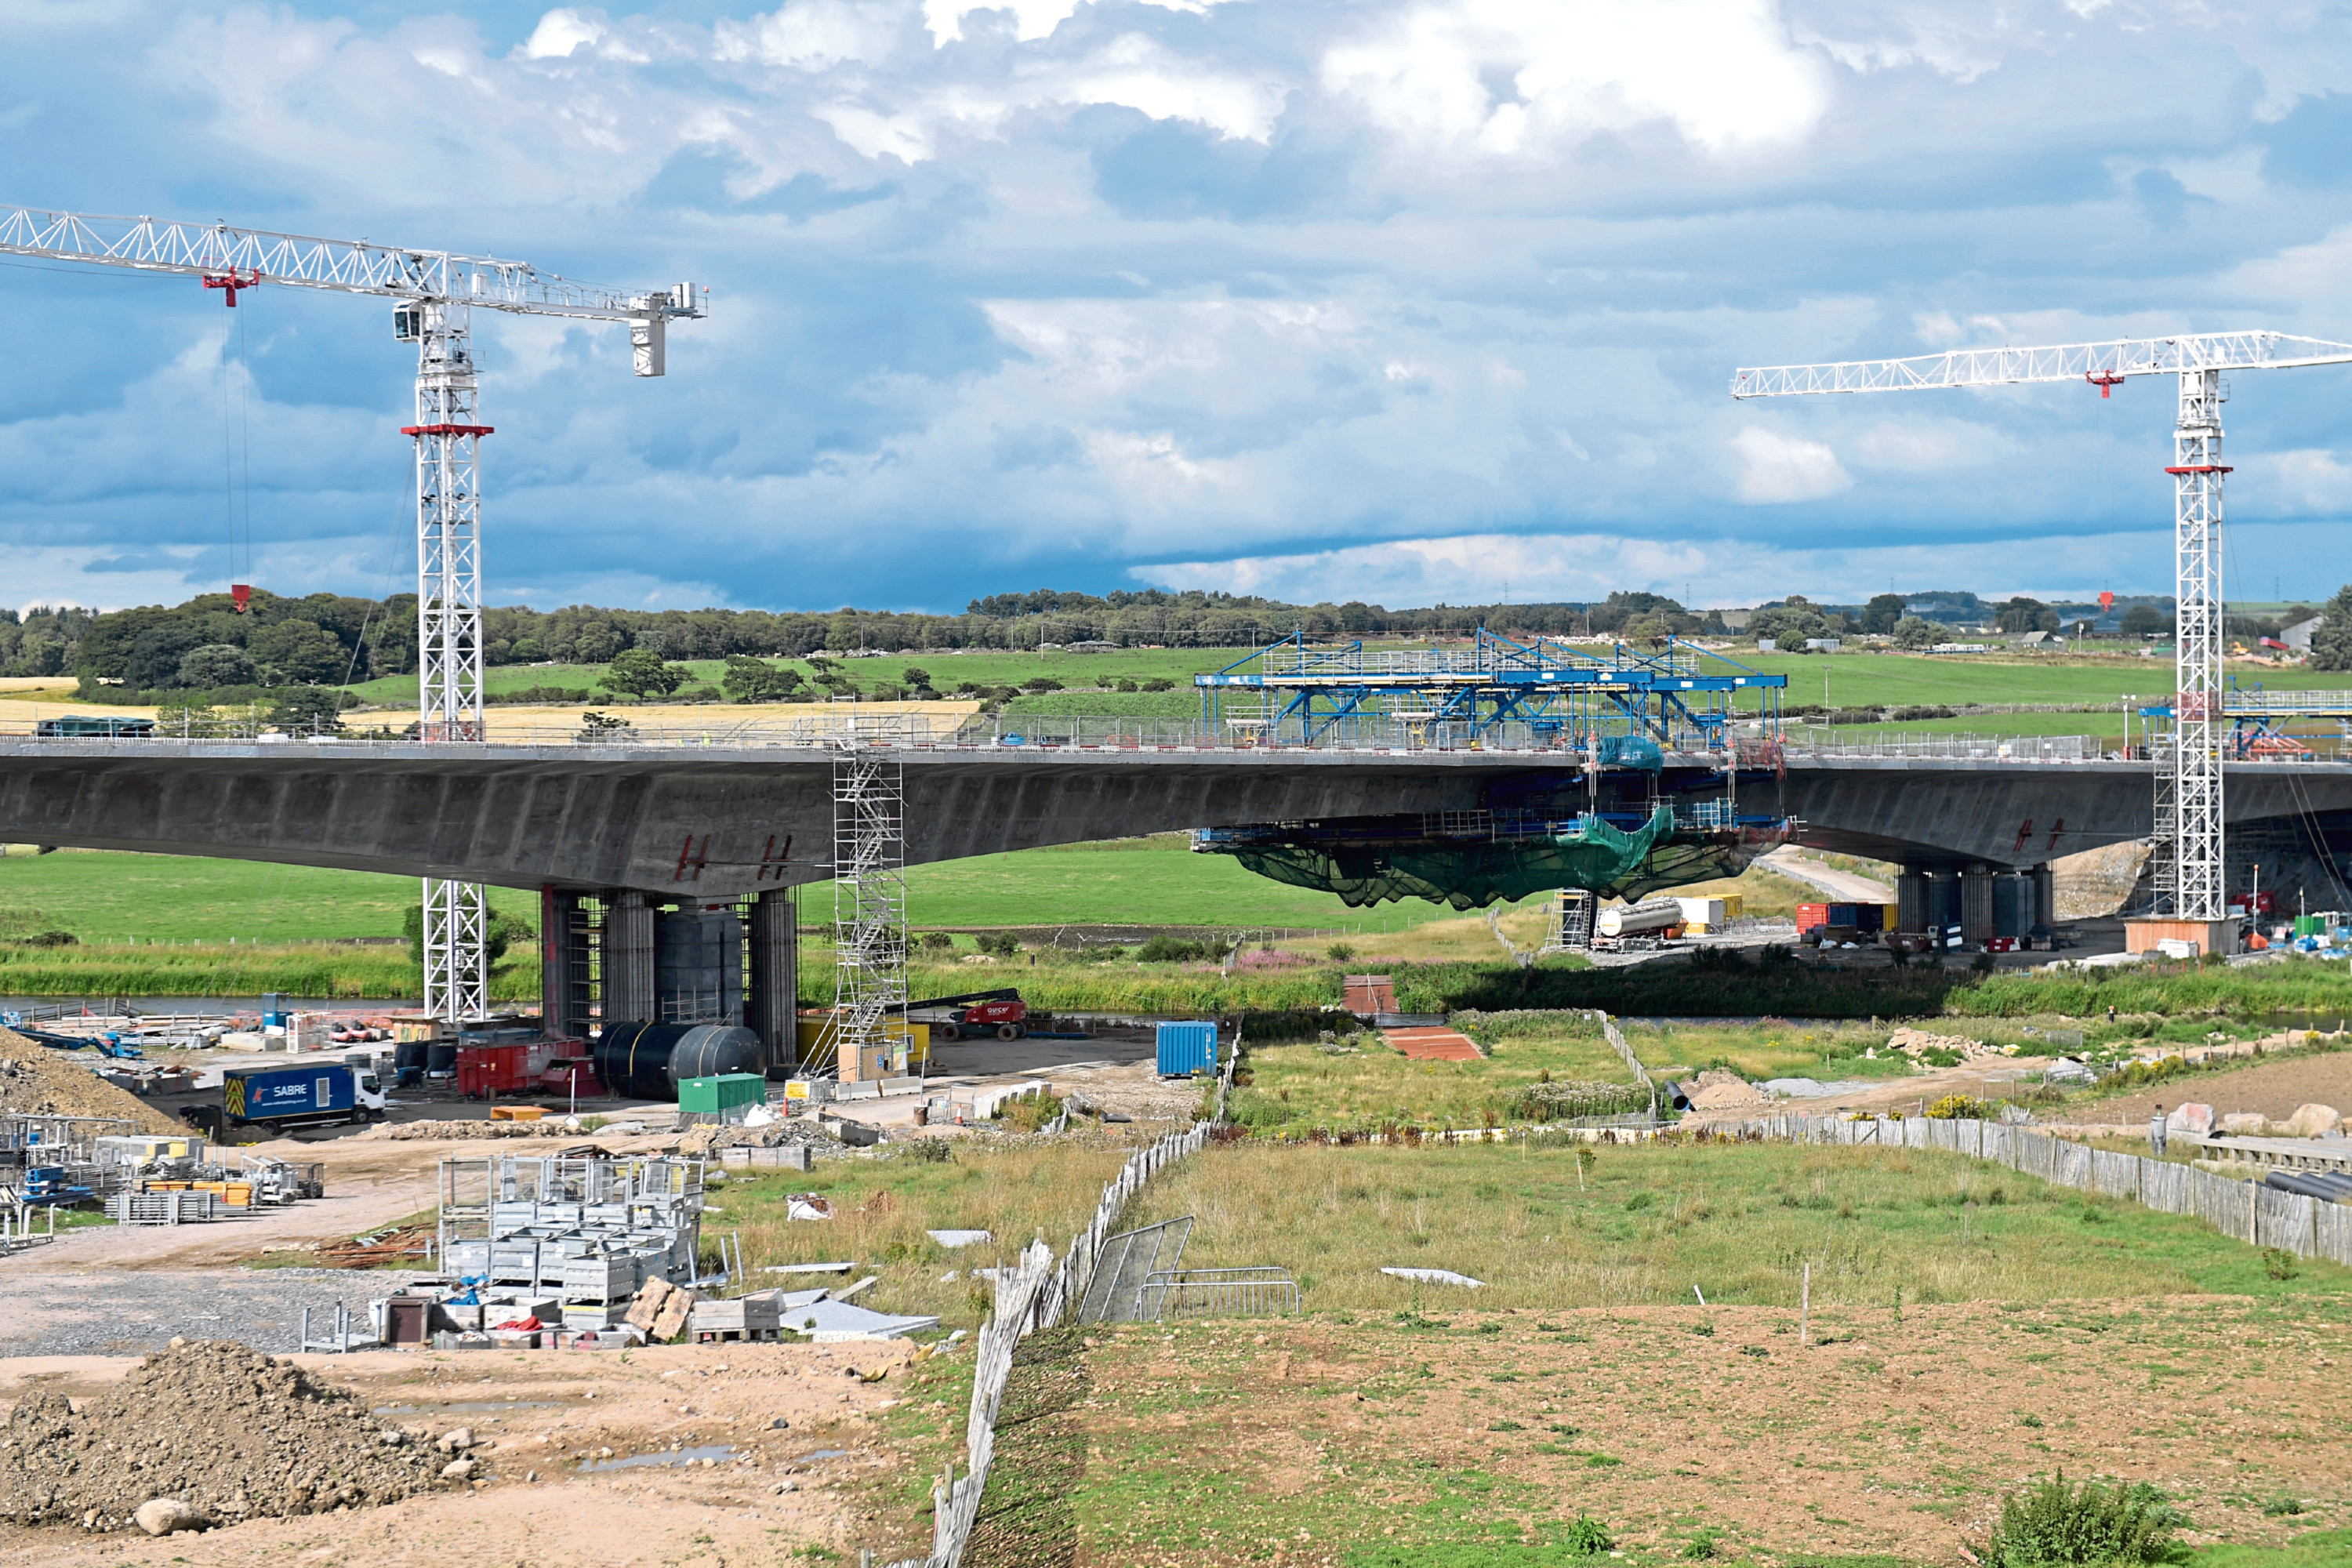 Repairs are to be carried out on the bridge after defects were discovered